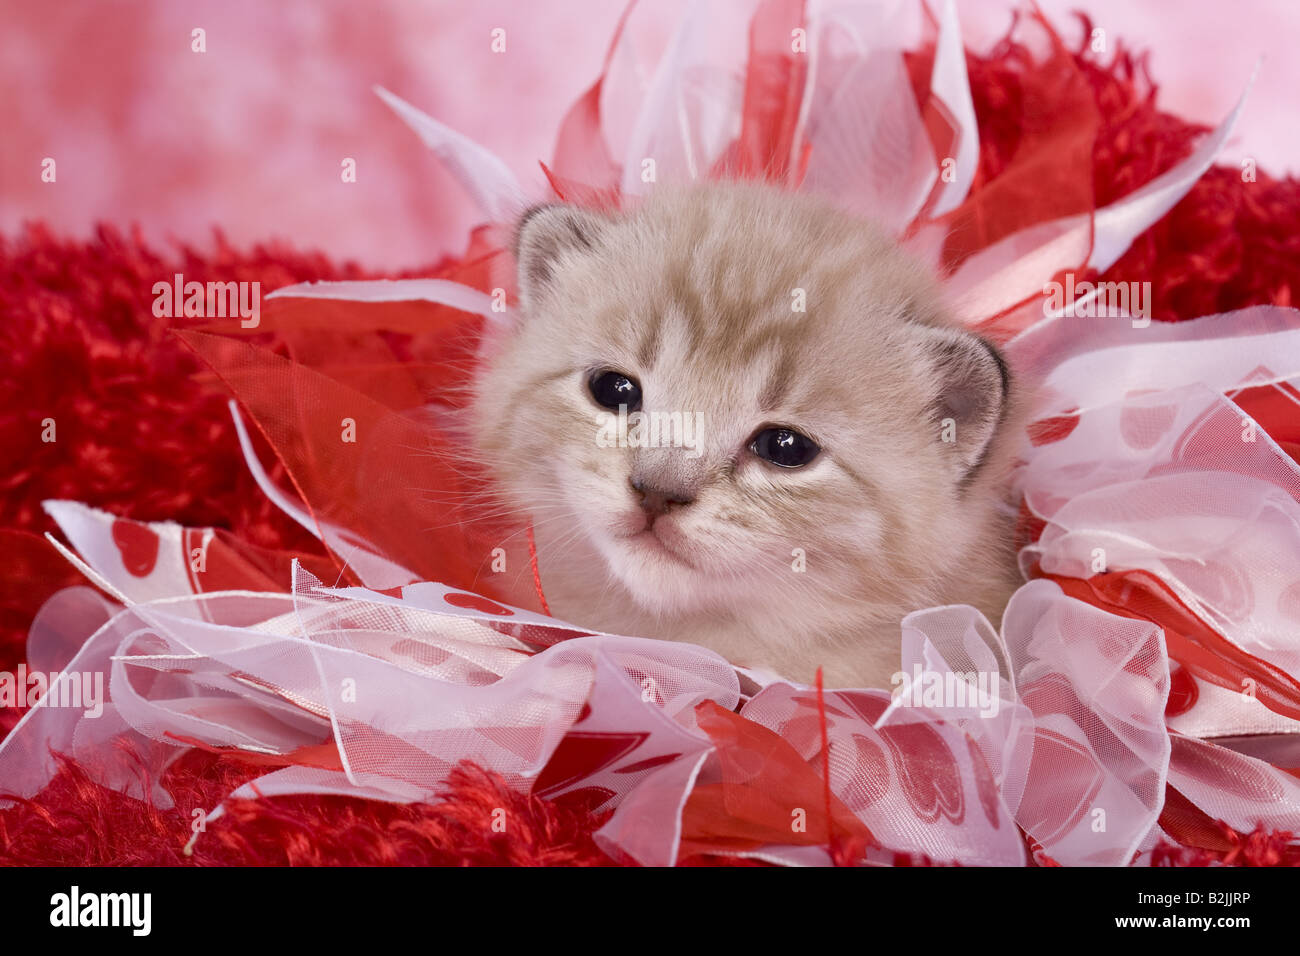 Adorable Valentines Day Kitten On Red Background Stock Photo